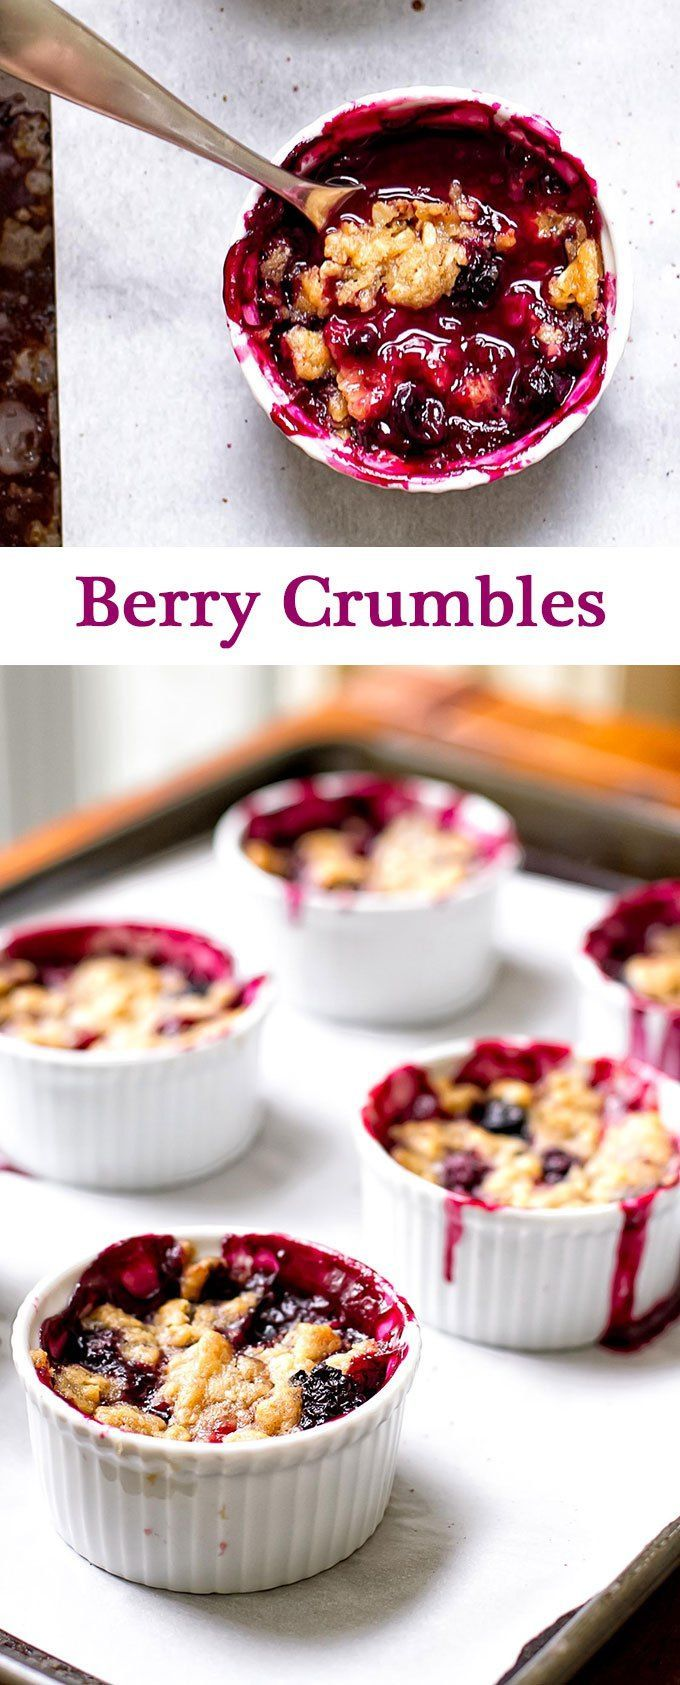 Berry crumbles made with blackberries, strawberries, and blueberries with a sweet and crunchy topping | girlgonegourmet.com